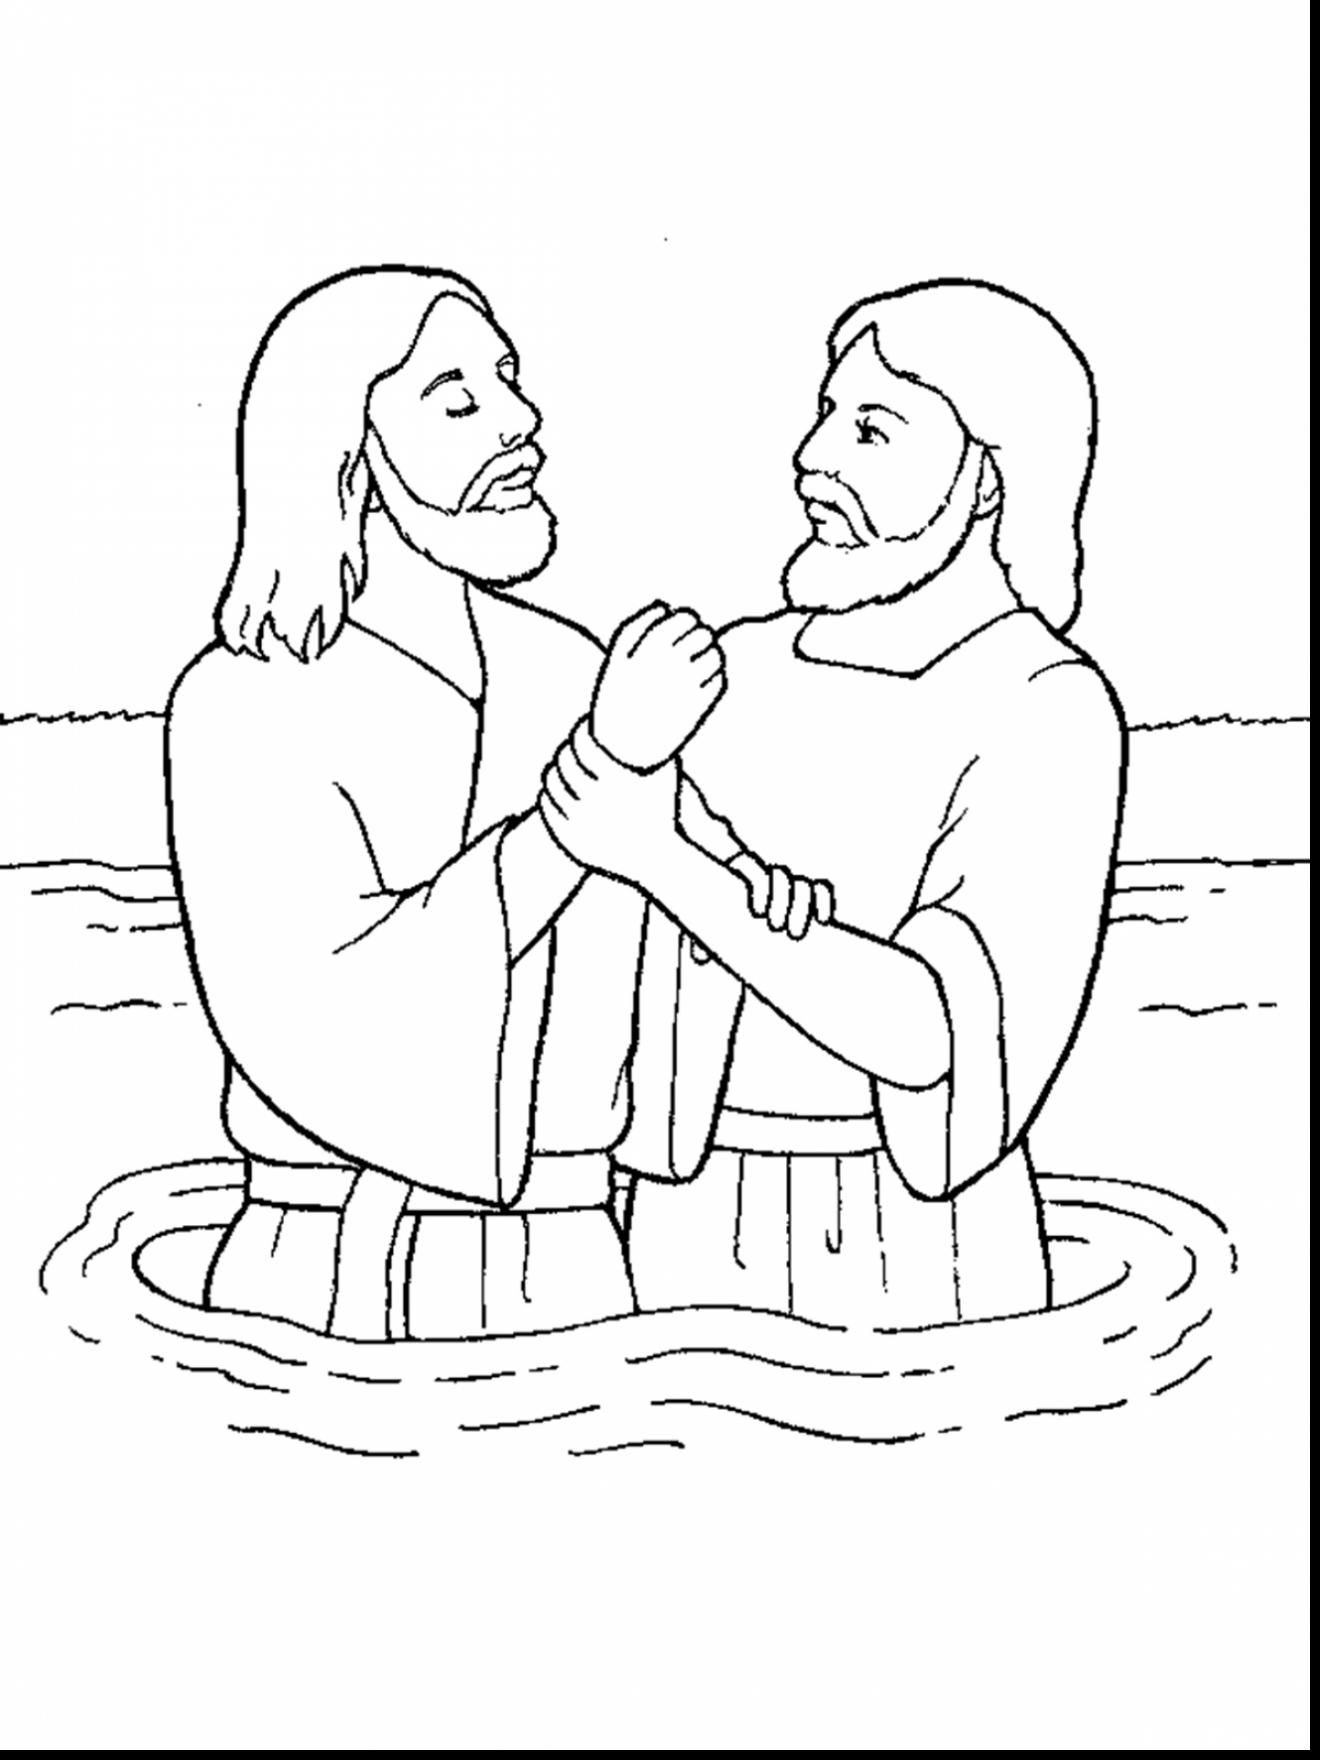 Superb John The Baptist Coloring Pages For Kids With Baptism Jesus Coloring Pages Lds Coloring Pages Bible Coloring Pages